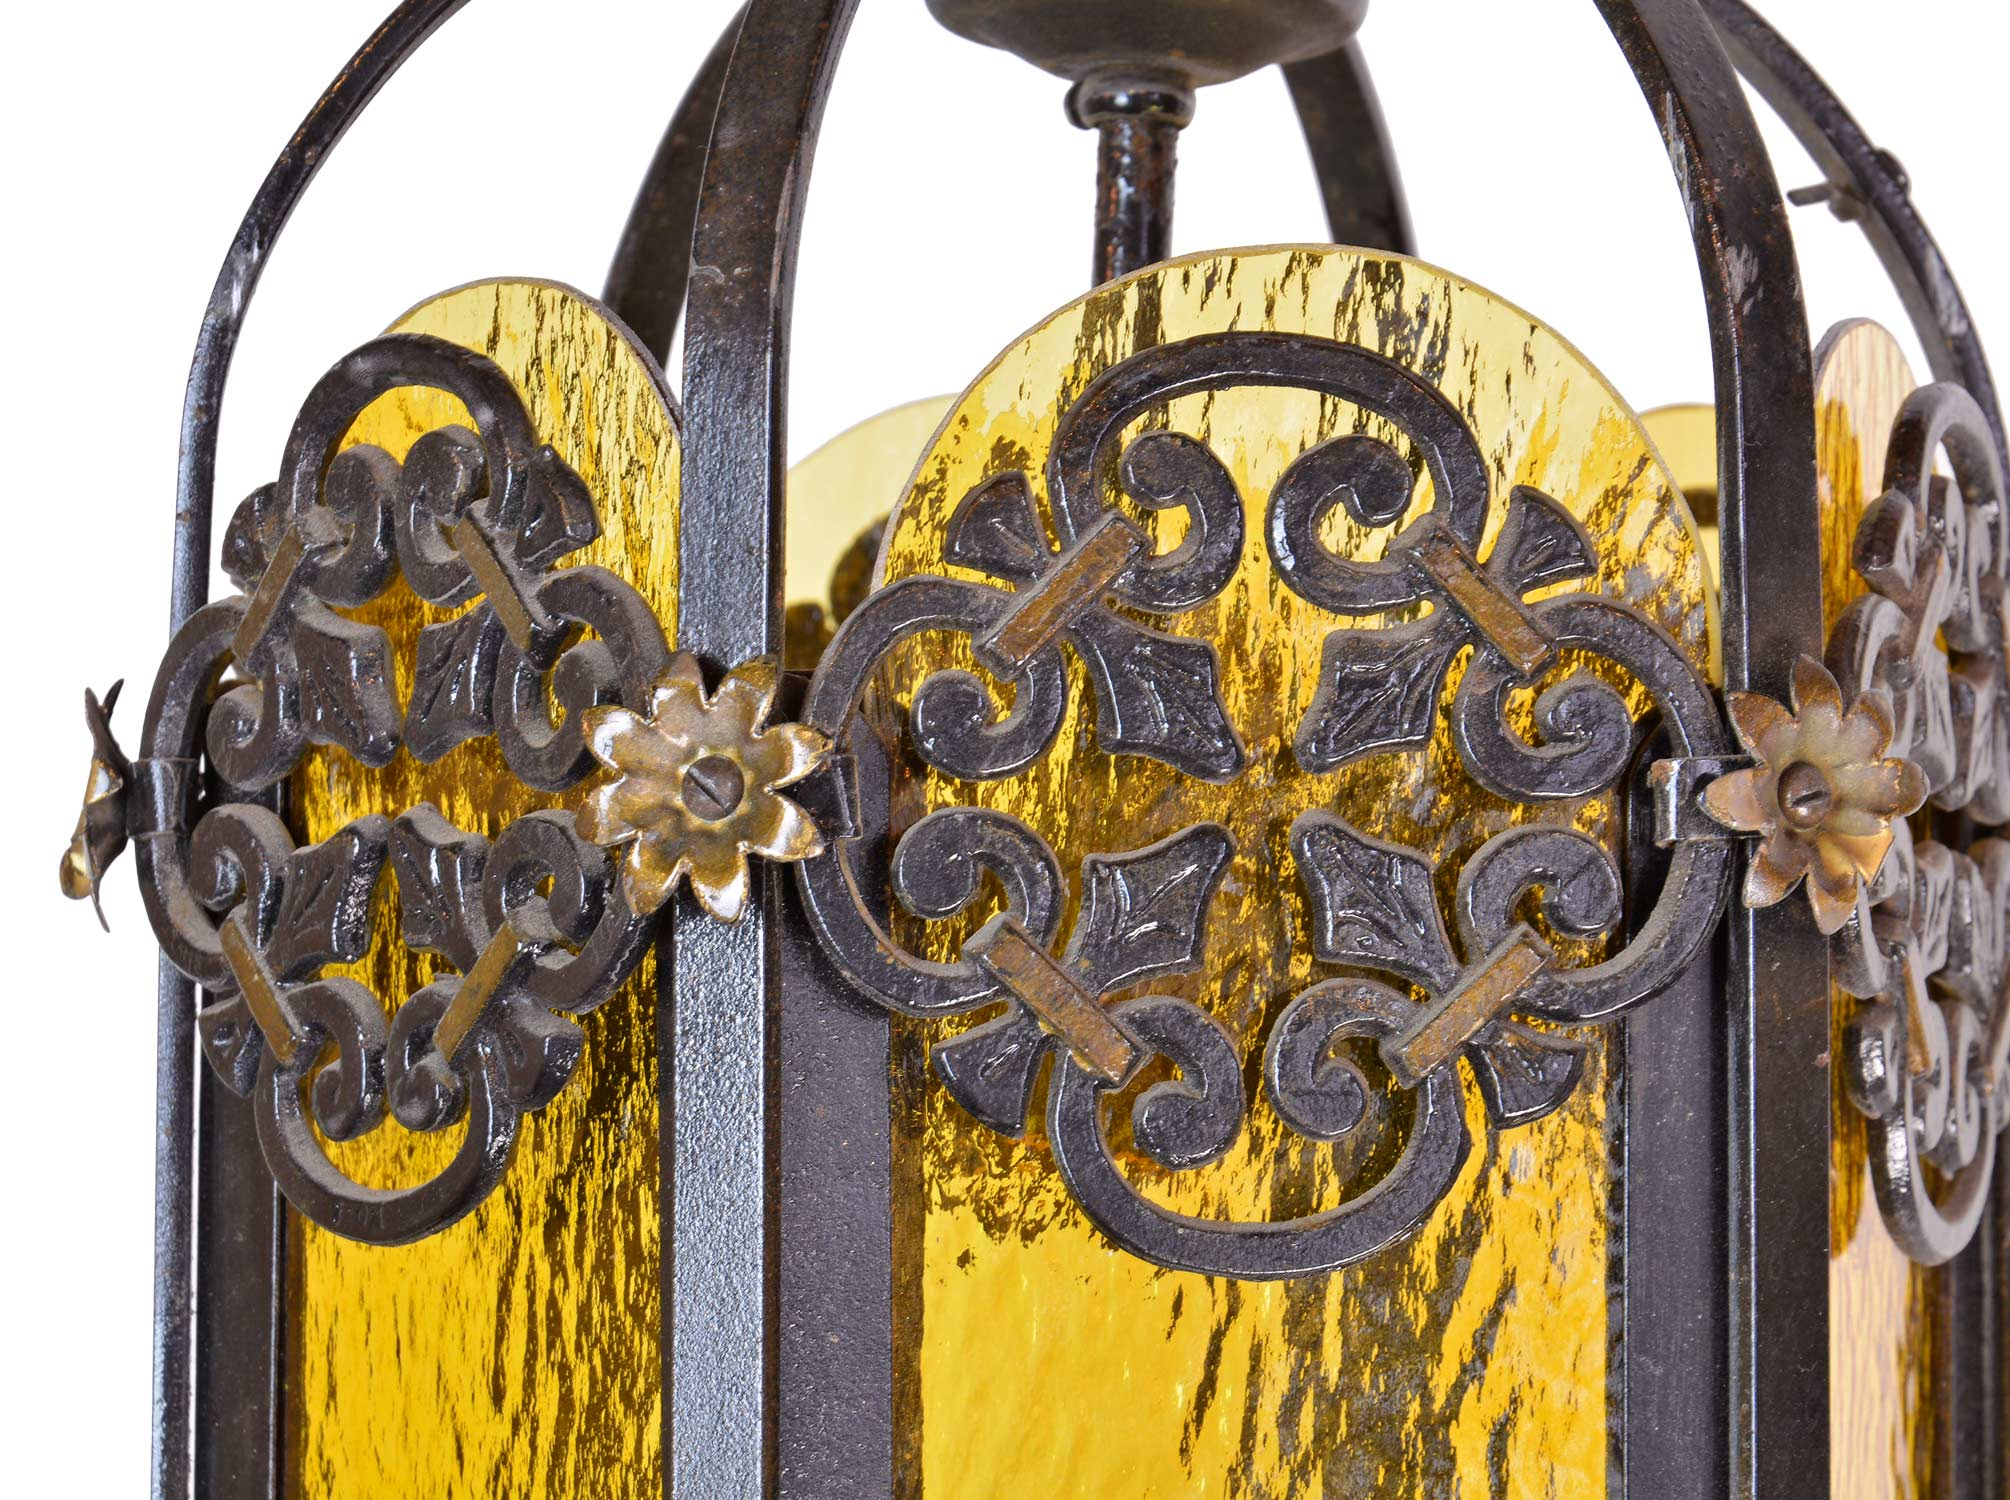 45961-bent-amber-glass-and-iron-chandelier-with-floral-details-emblem.jpg